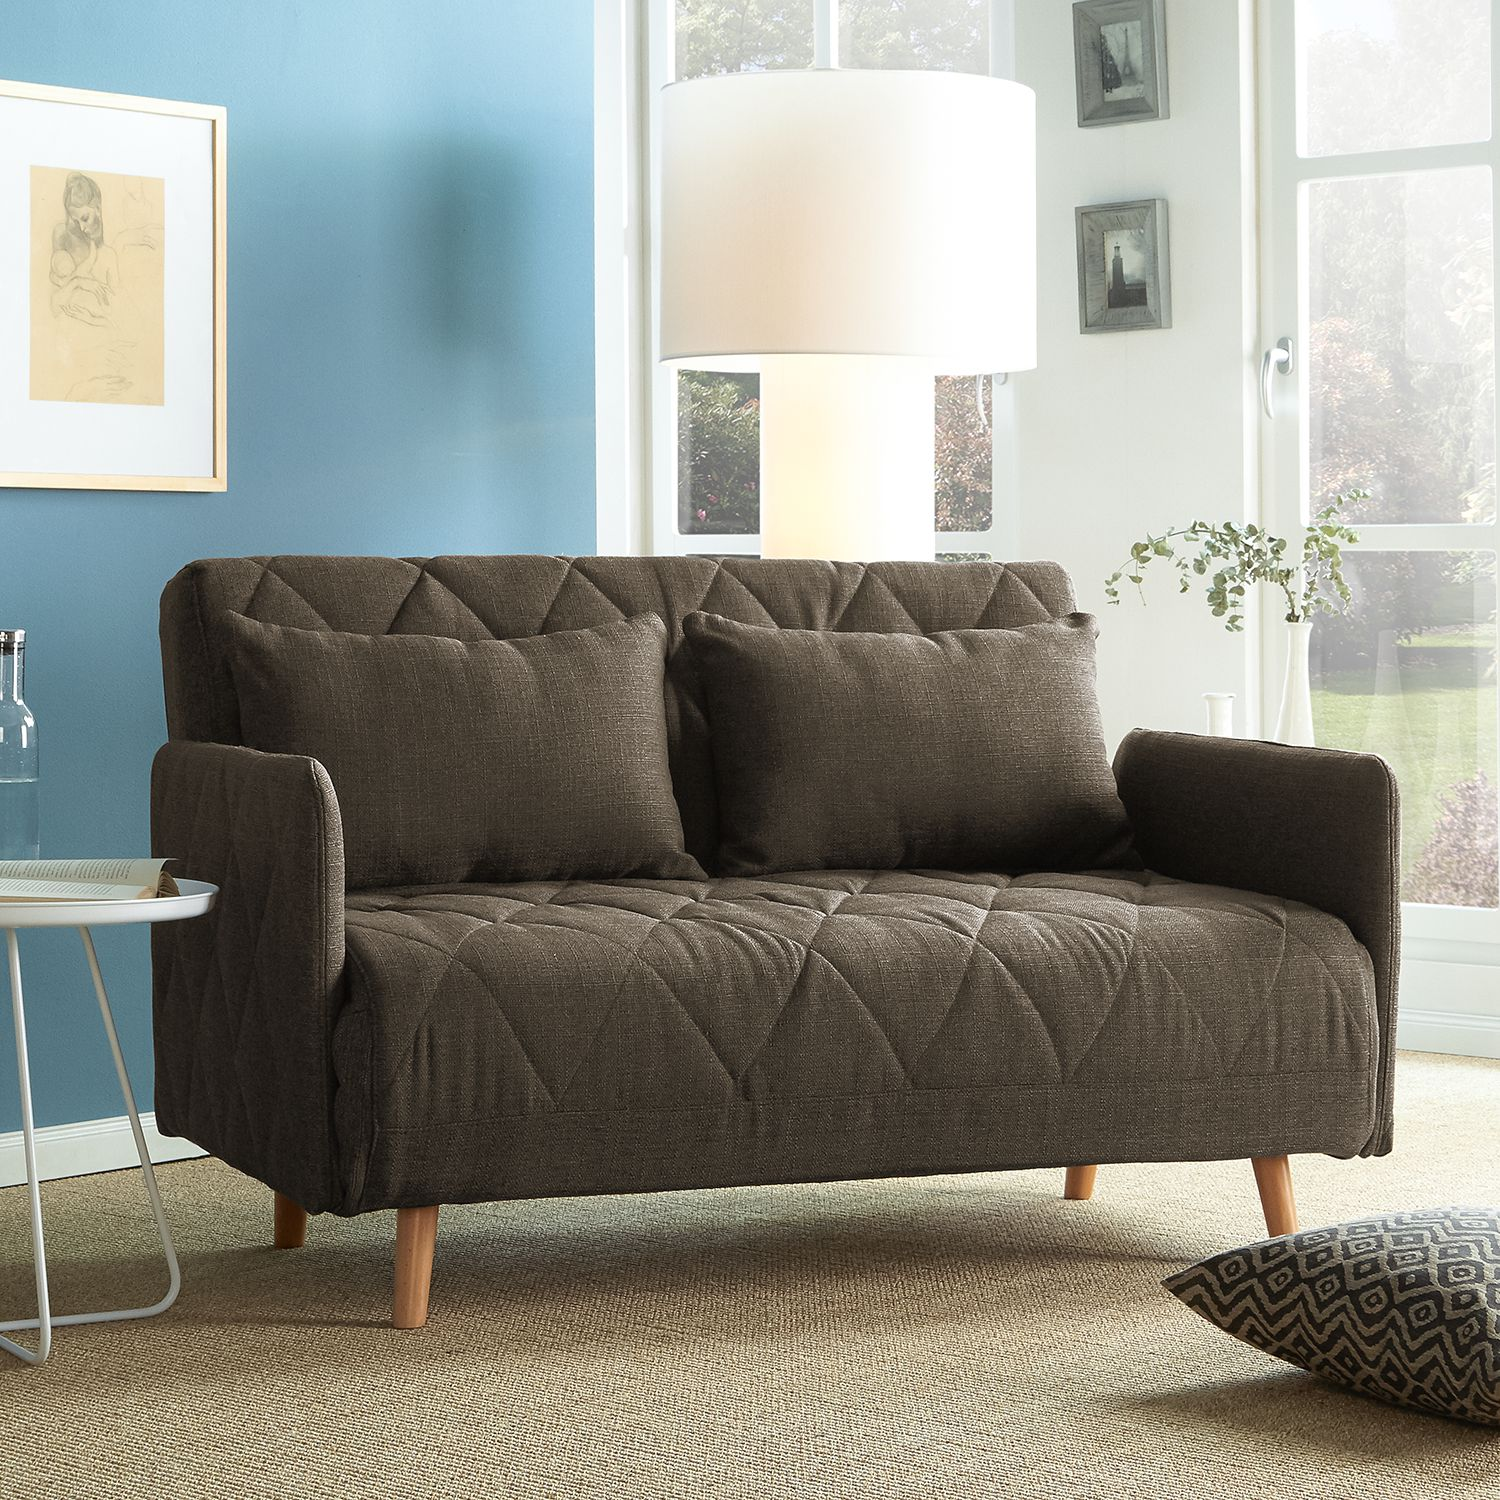 gnstige schlafsofas unter 100 euro finest schlafsofa unter euro m belideen with gnstige. Black Bedroom Furniture Sets. Home Design Ideas